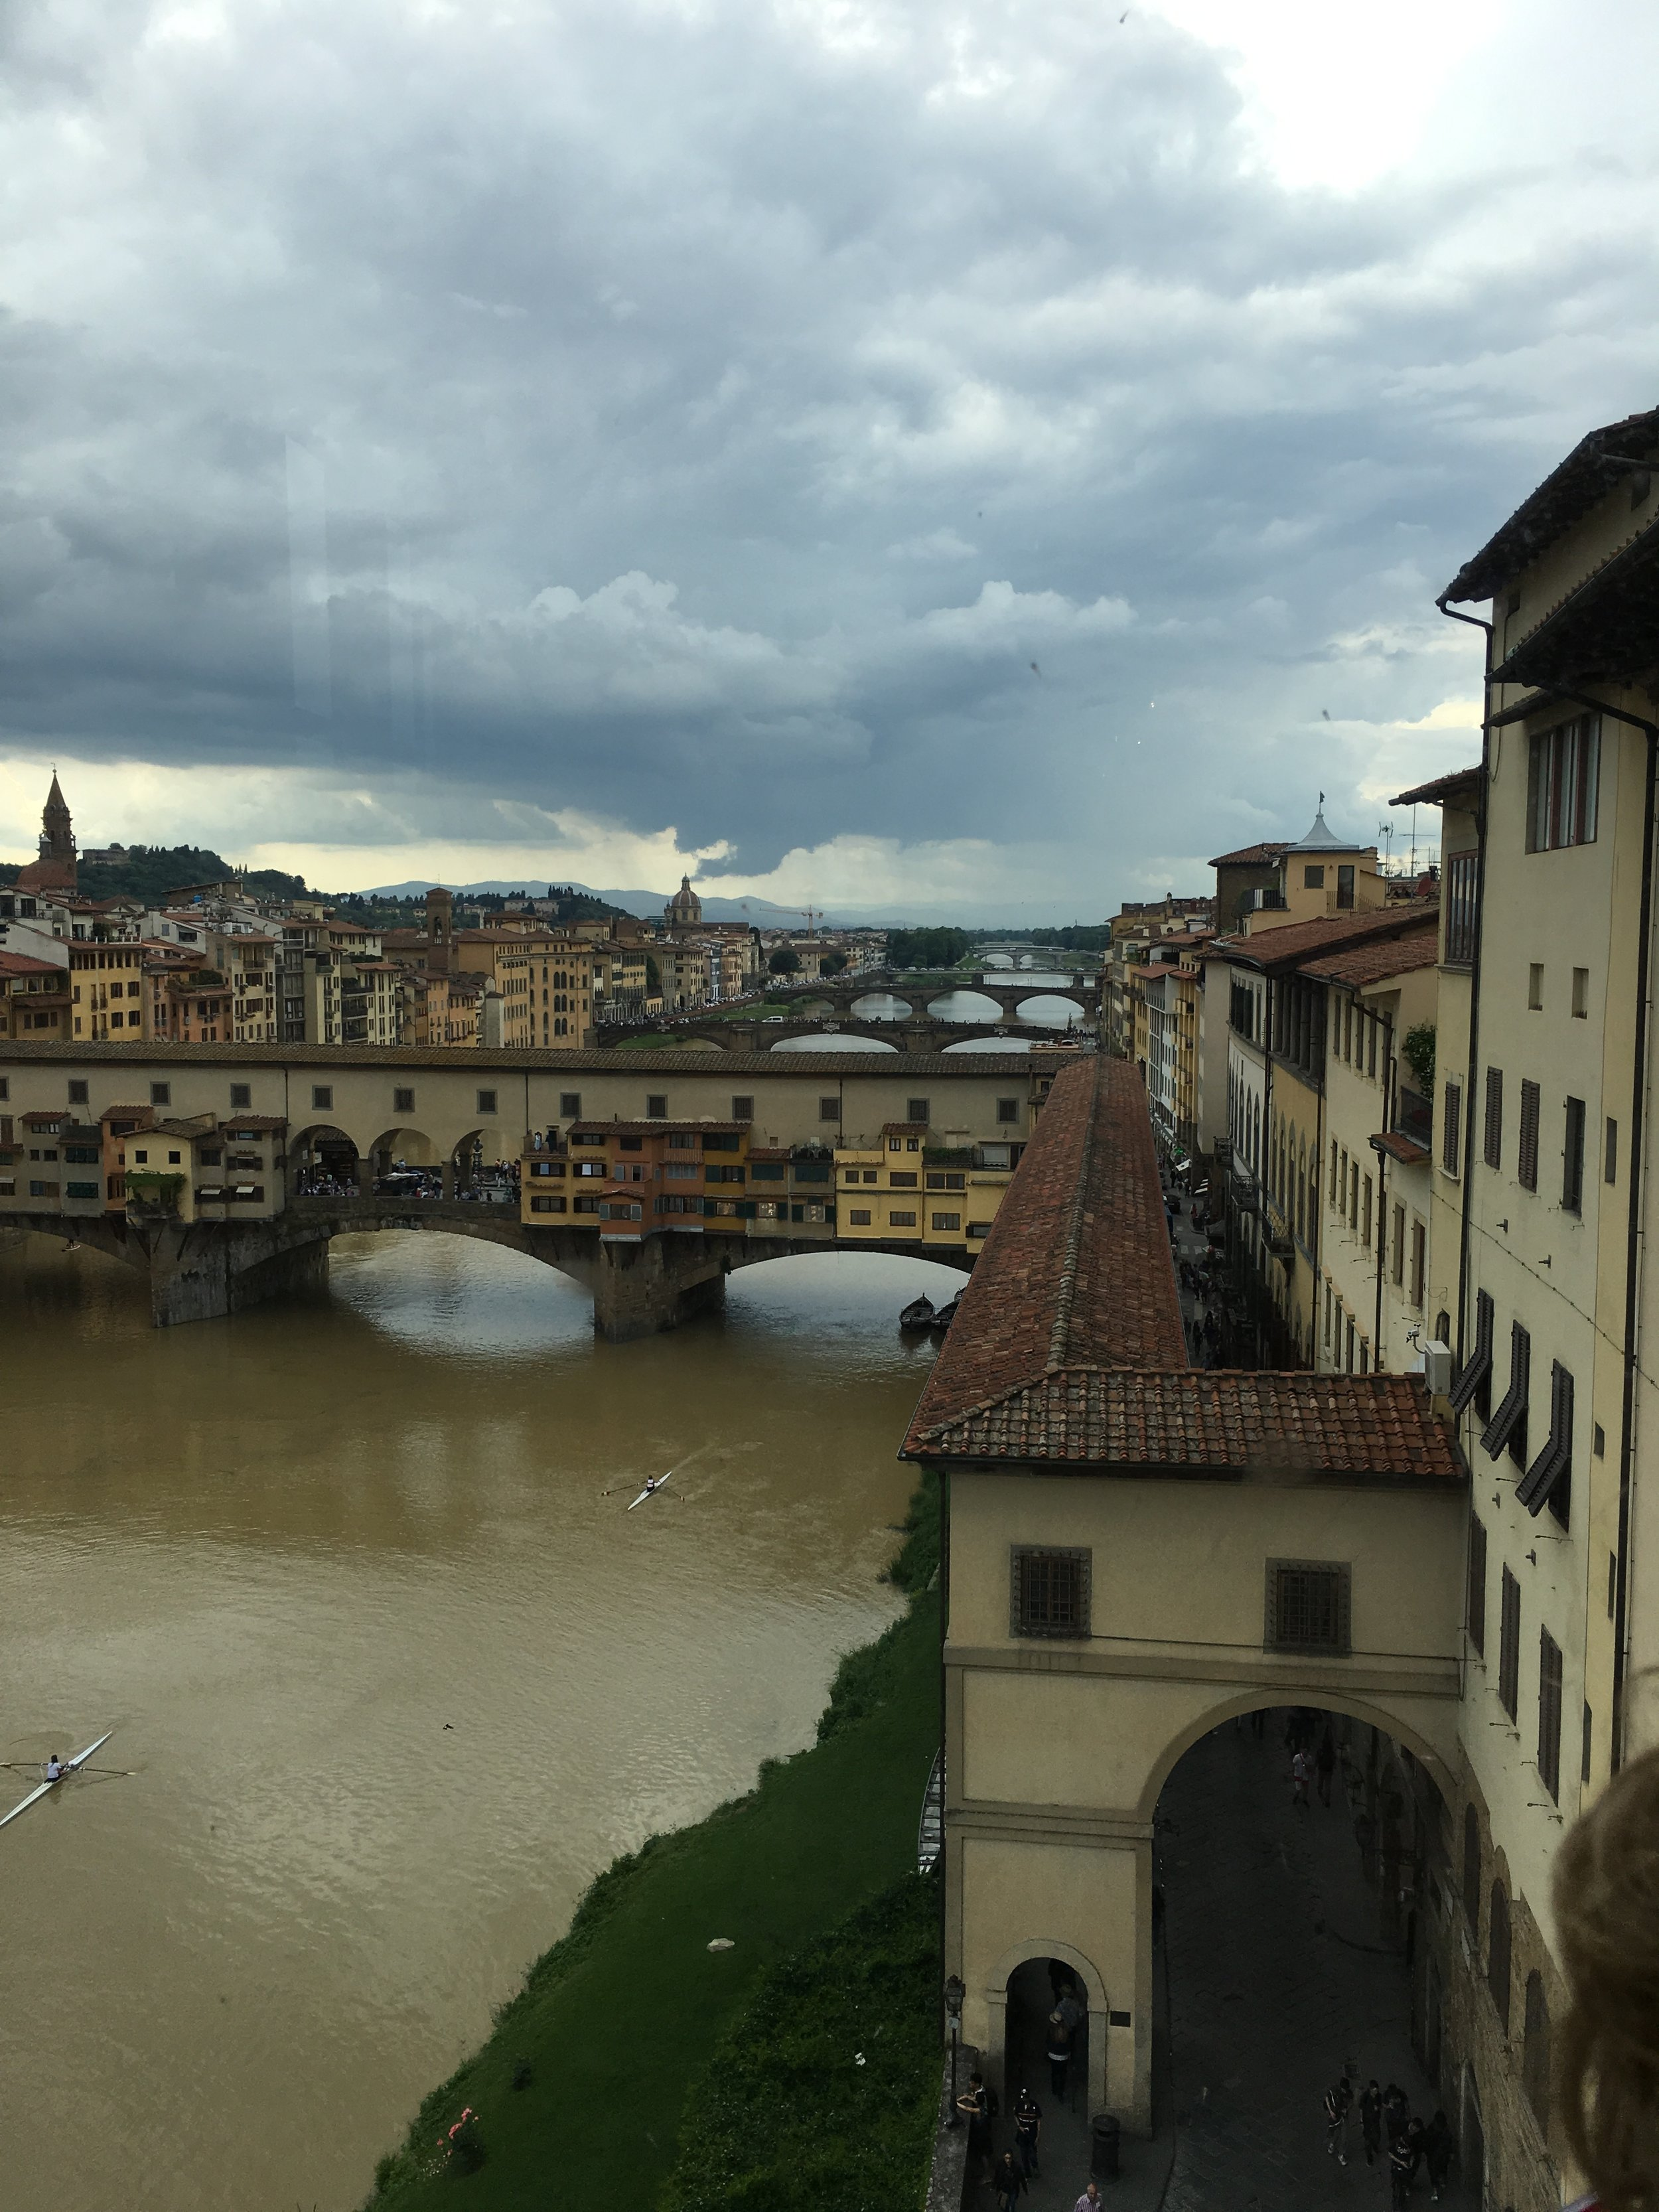 Below is a view of one side of the Palazzo Vecchio from the Uffizi.